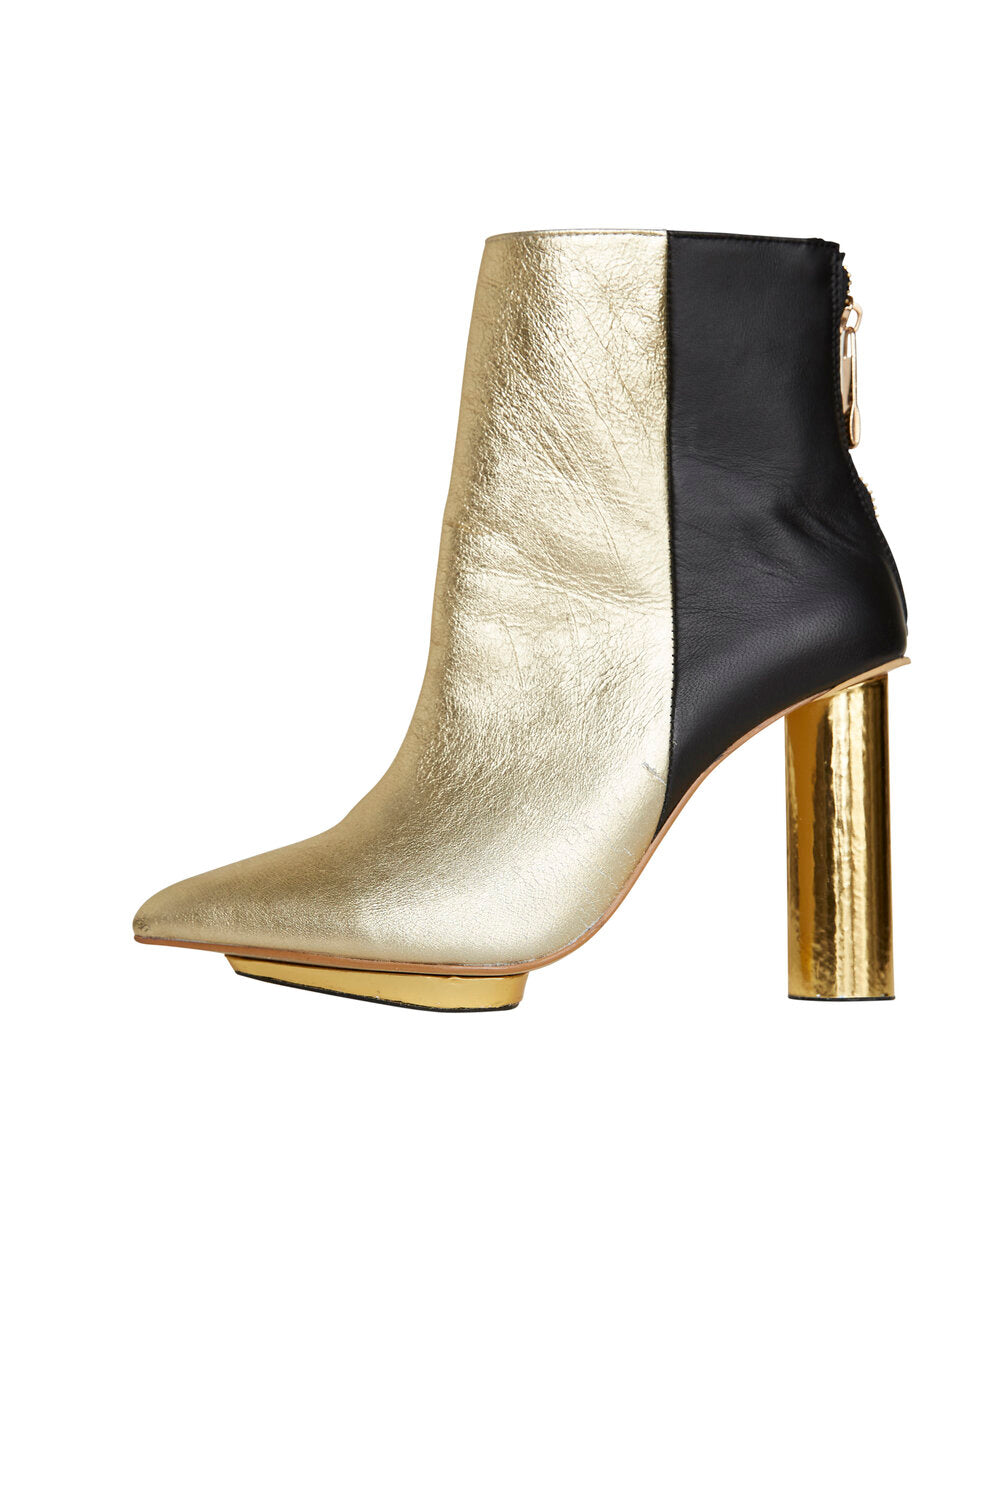 Roxy - Gold and Black Boot